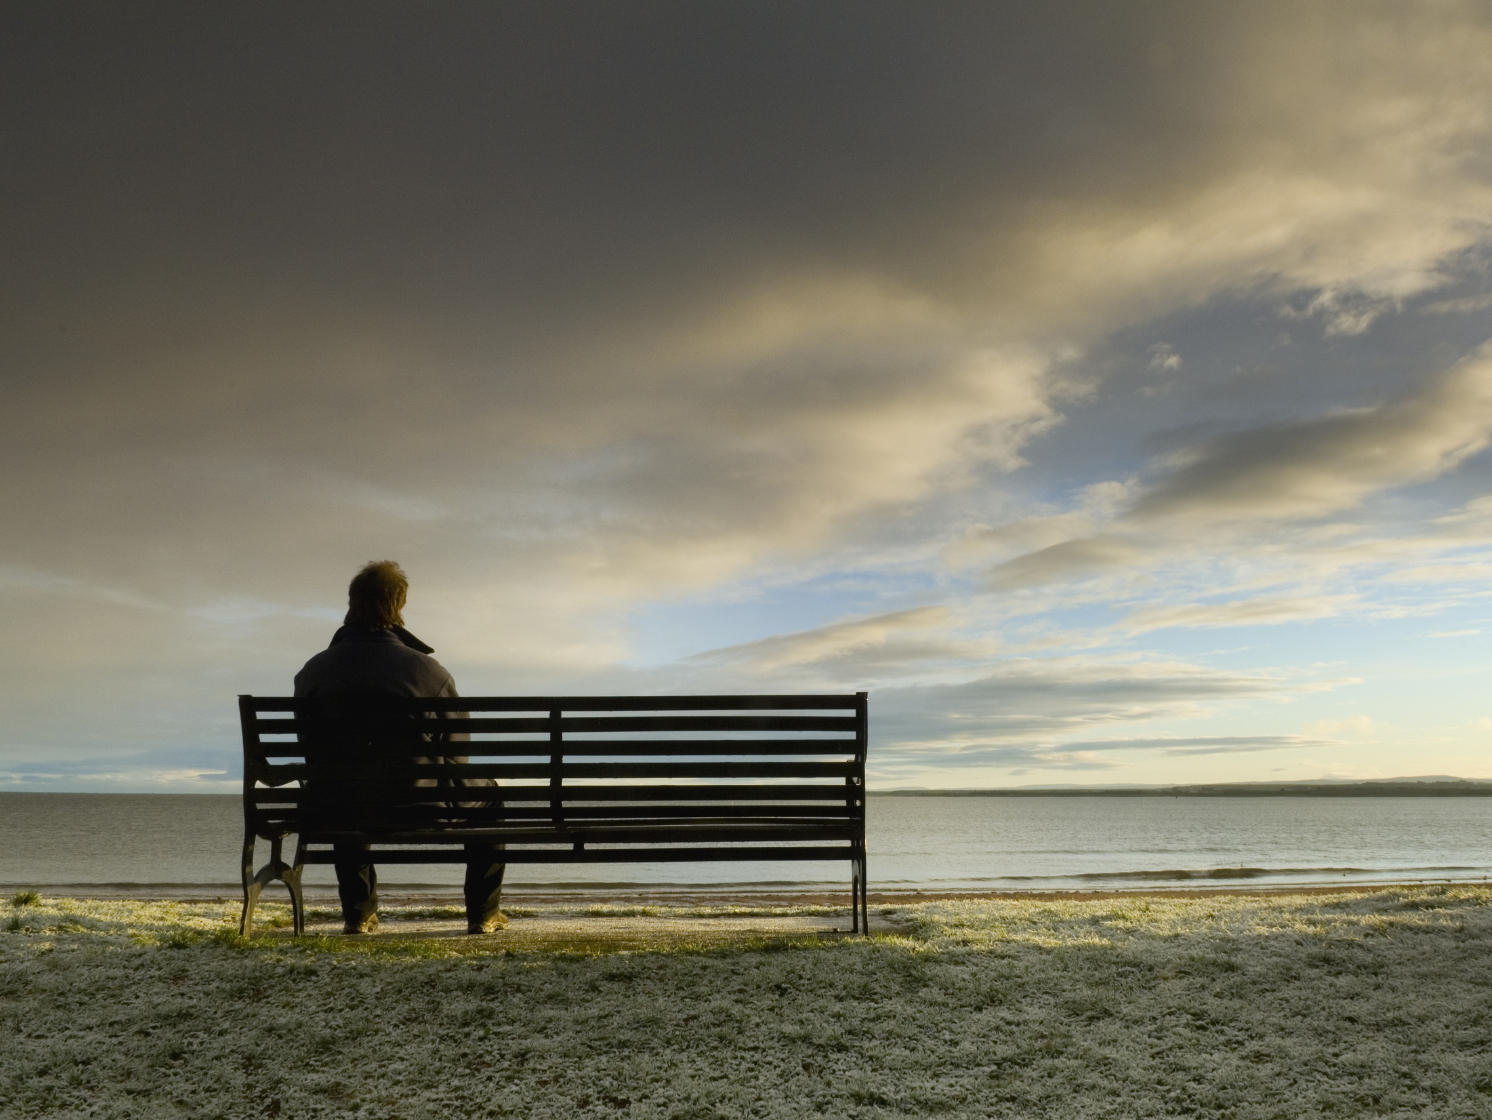 Image from - https://gretchenrubin.com/happiness_project/2013/11/feeling-lonely-consider-trying-these-7-strategies/